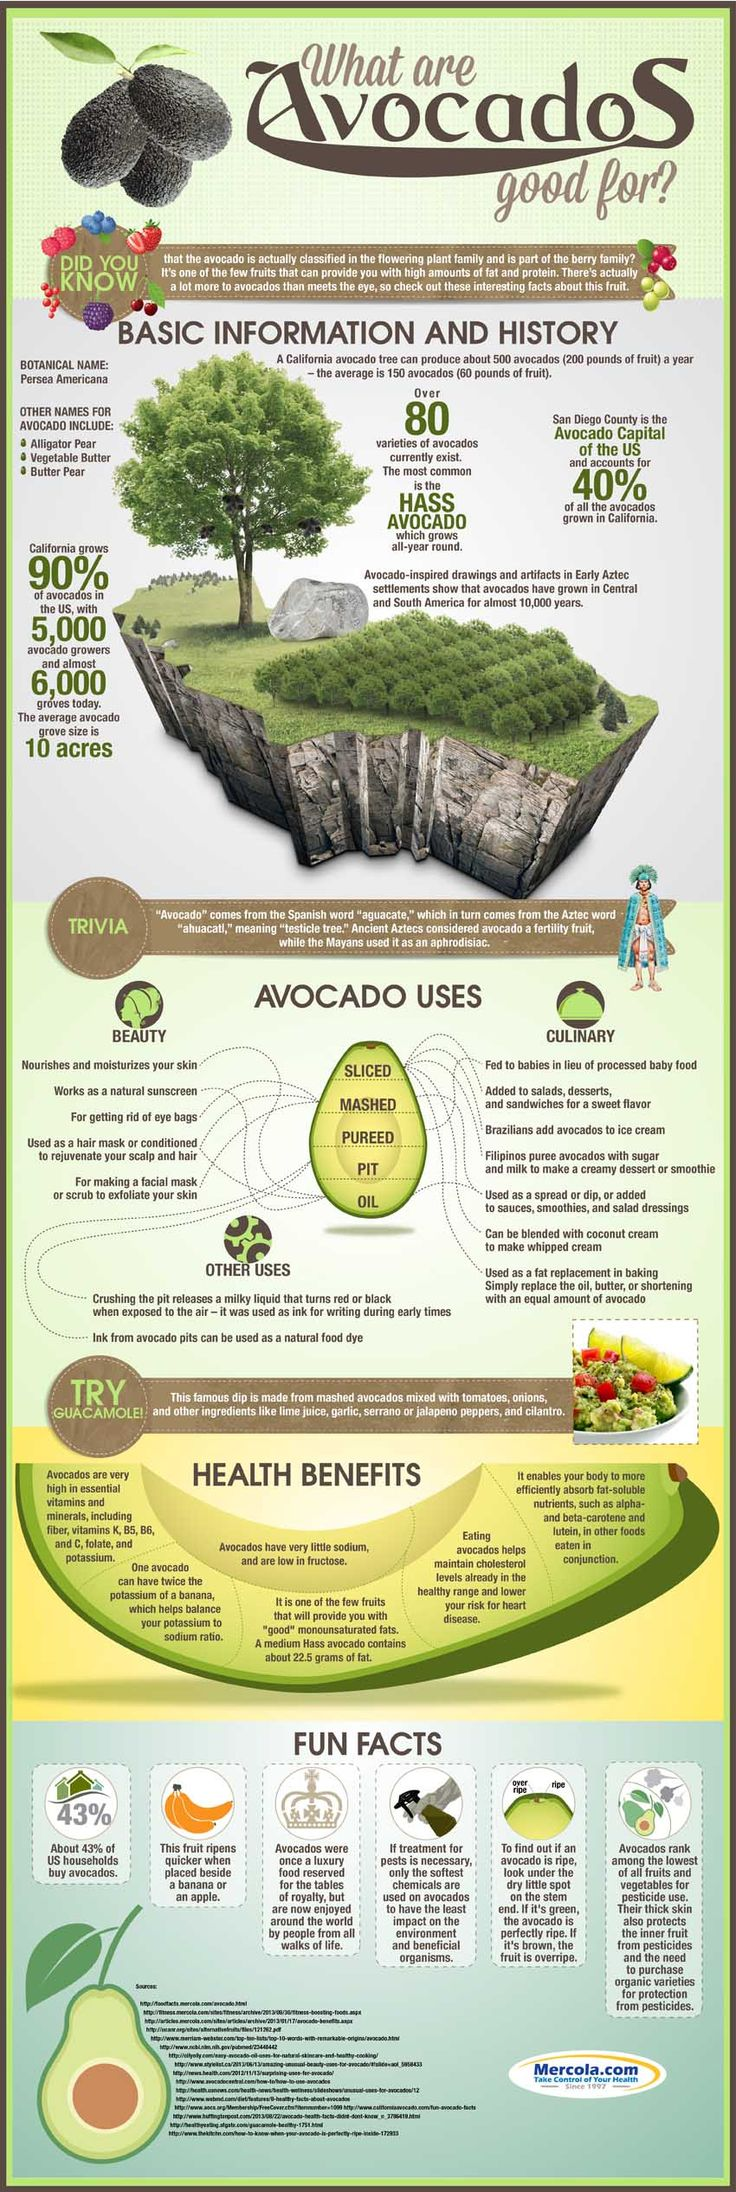 Avocados Health Benefits – An Avocado A Day!